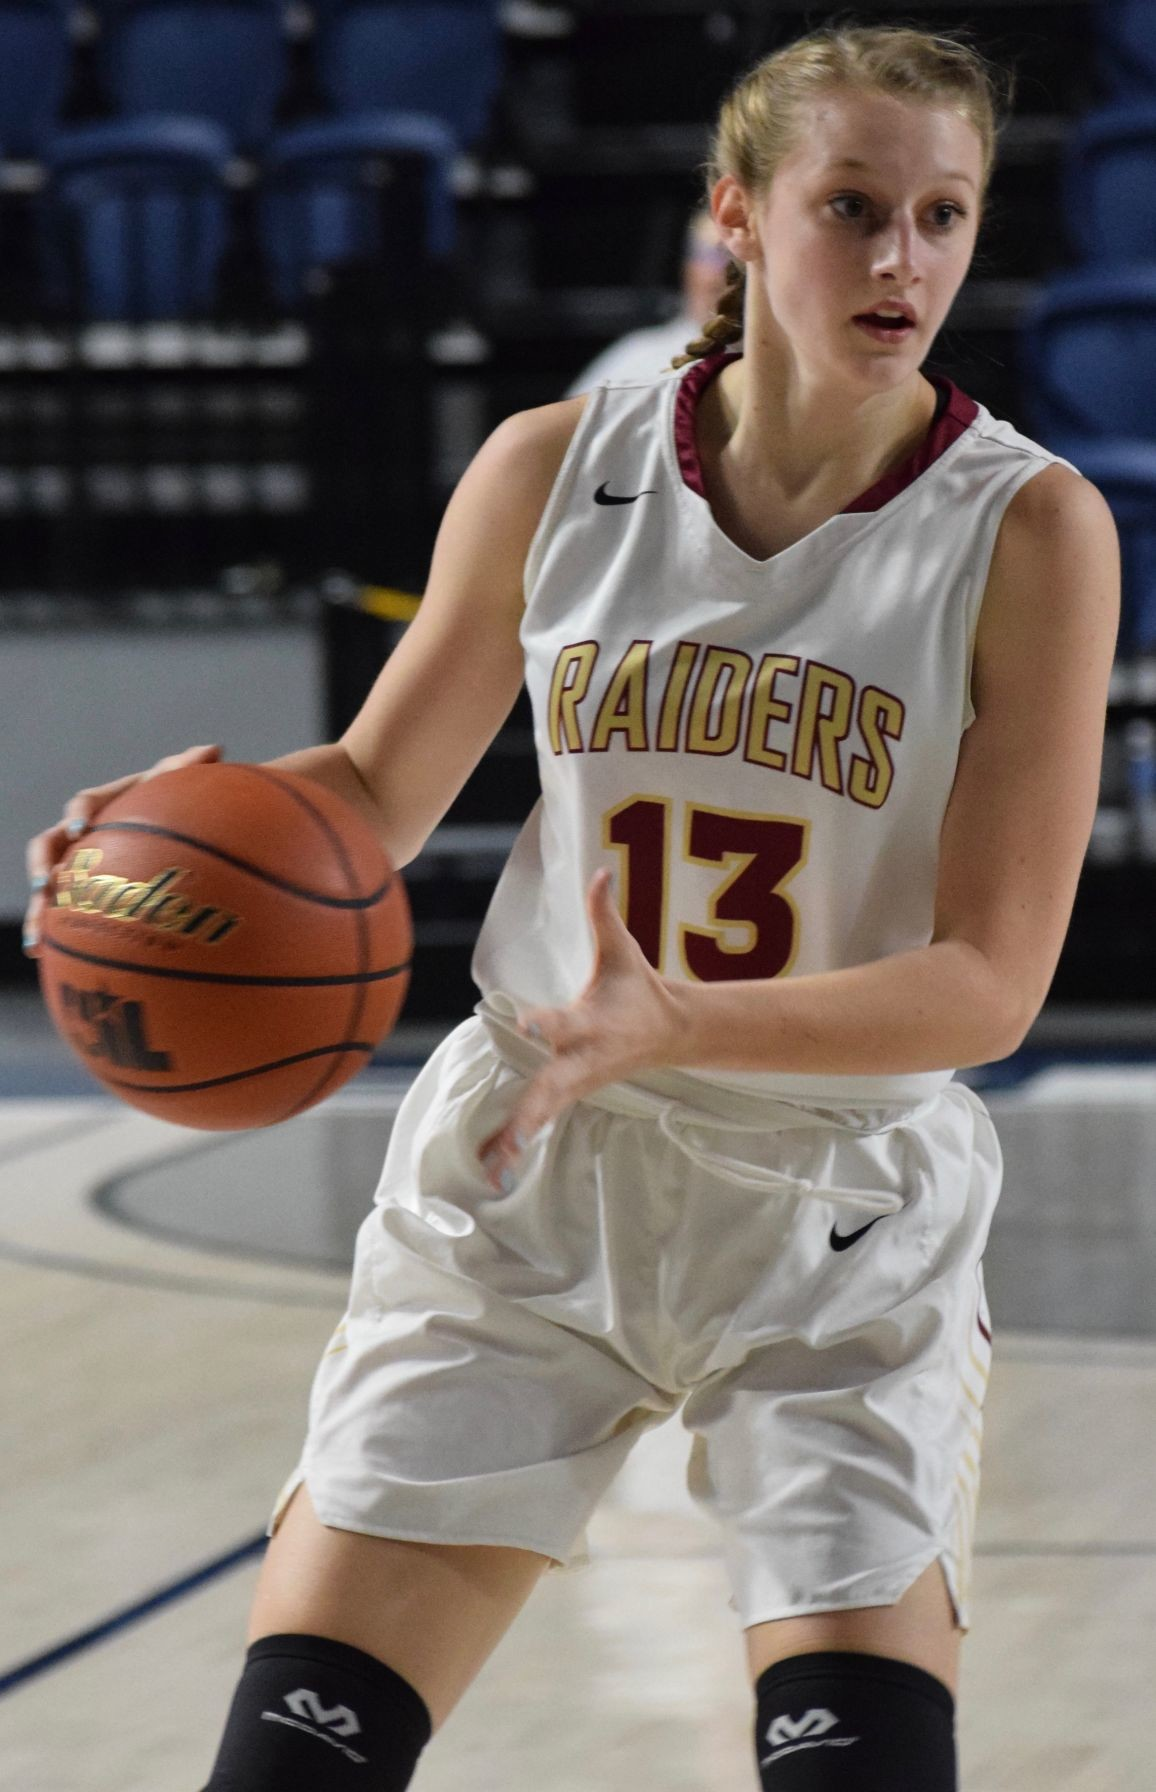 Zoe Holmes led Rouse with 10 points and six rebounds and the Lady Raiders lost to No. 4 Barbers Hill 56-36 in the regional semifinals at the Delmar Fieldhouse in Houston on Friday.